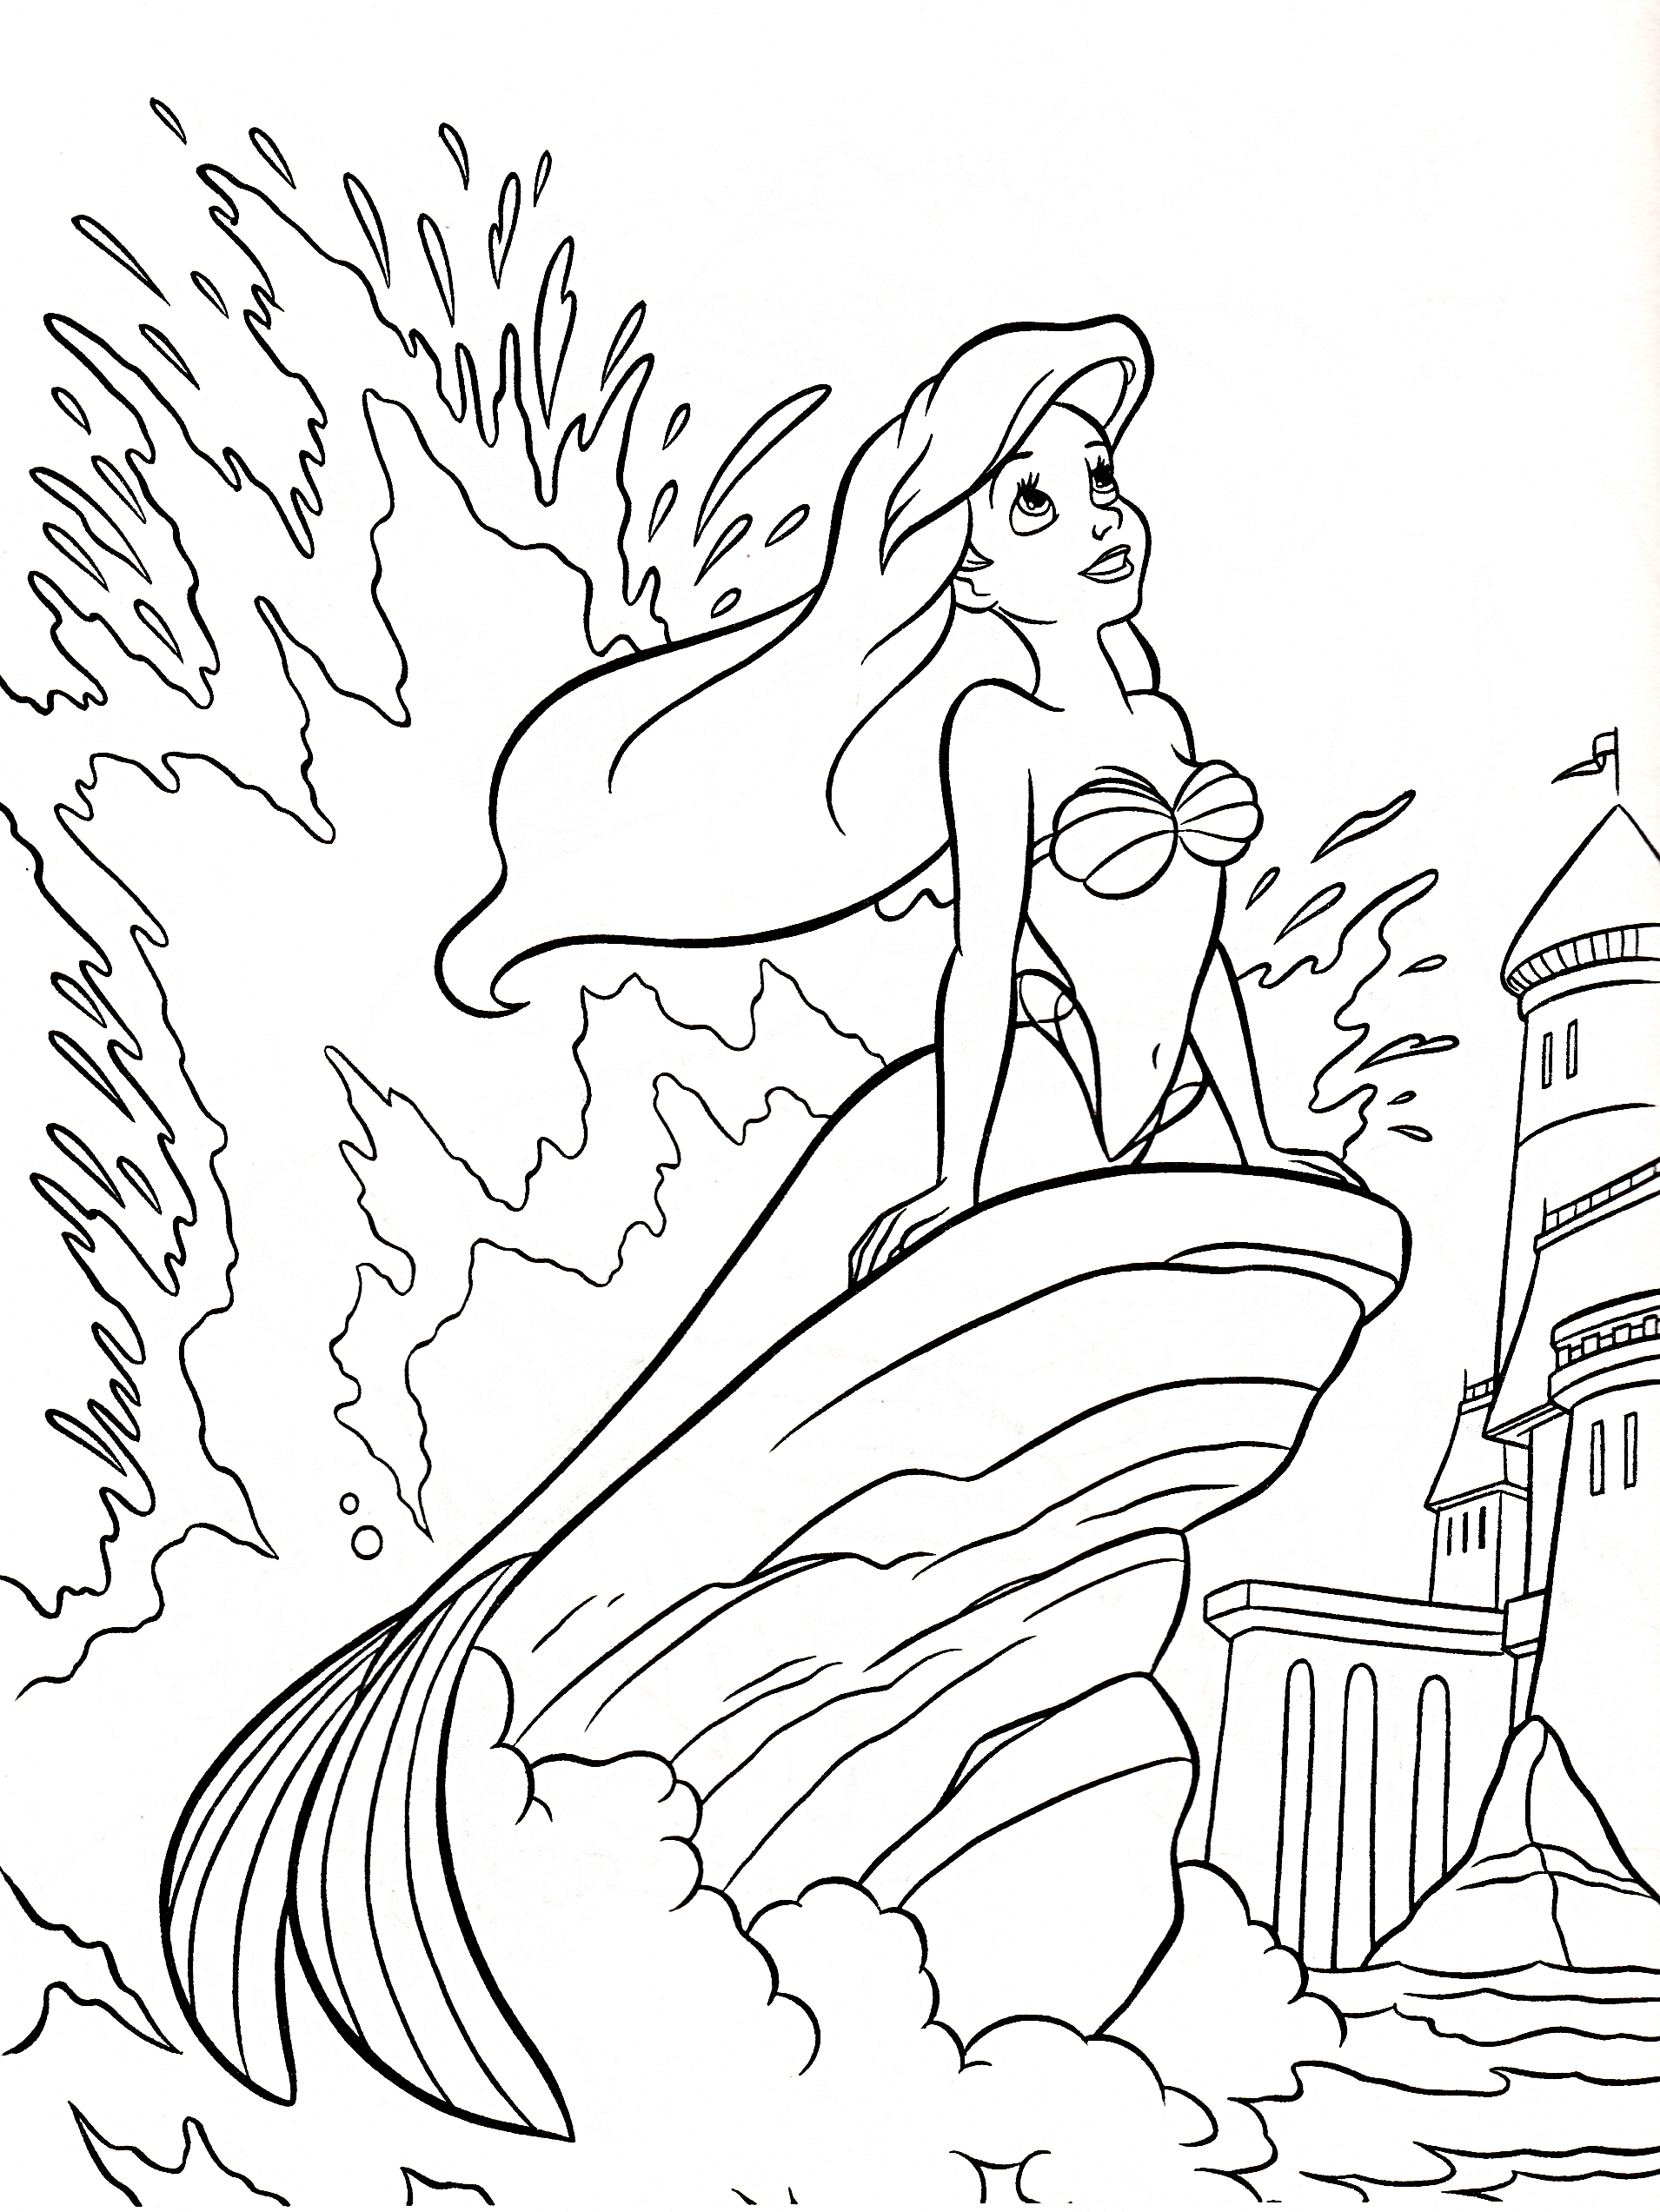 New Walt Disney World Coloring Pages Collection Download Of Walt Disney Coloring Pages Marie Walt Disney Characters Download